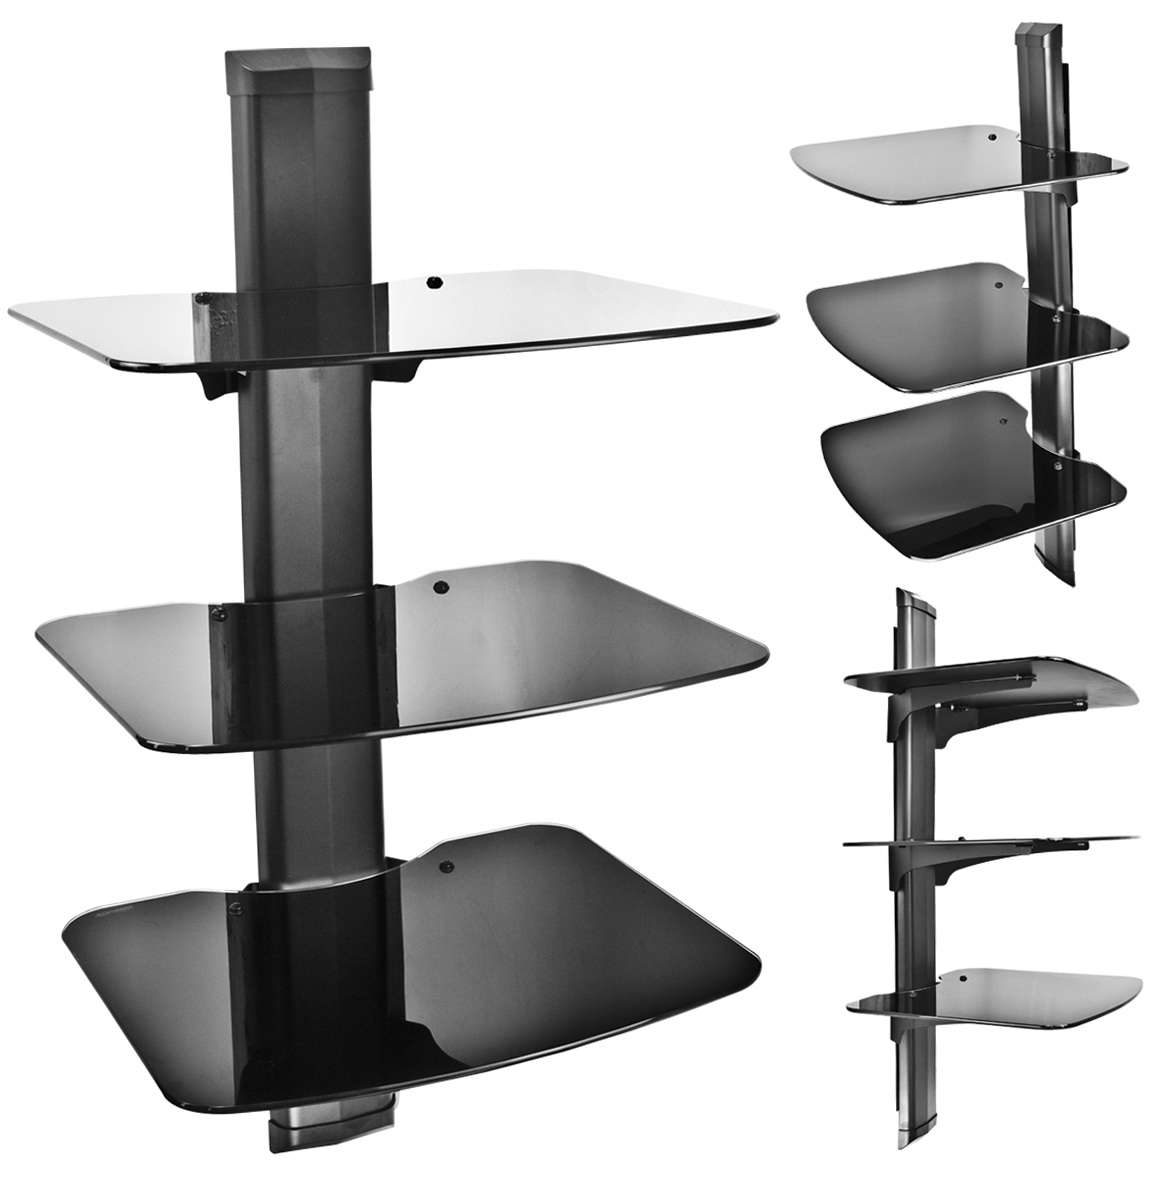 Wall Mounted Shelving For Tv Components